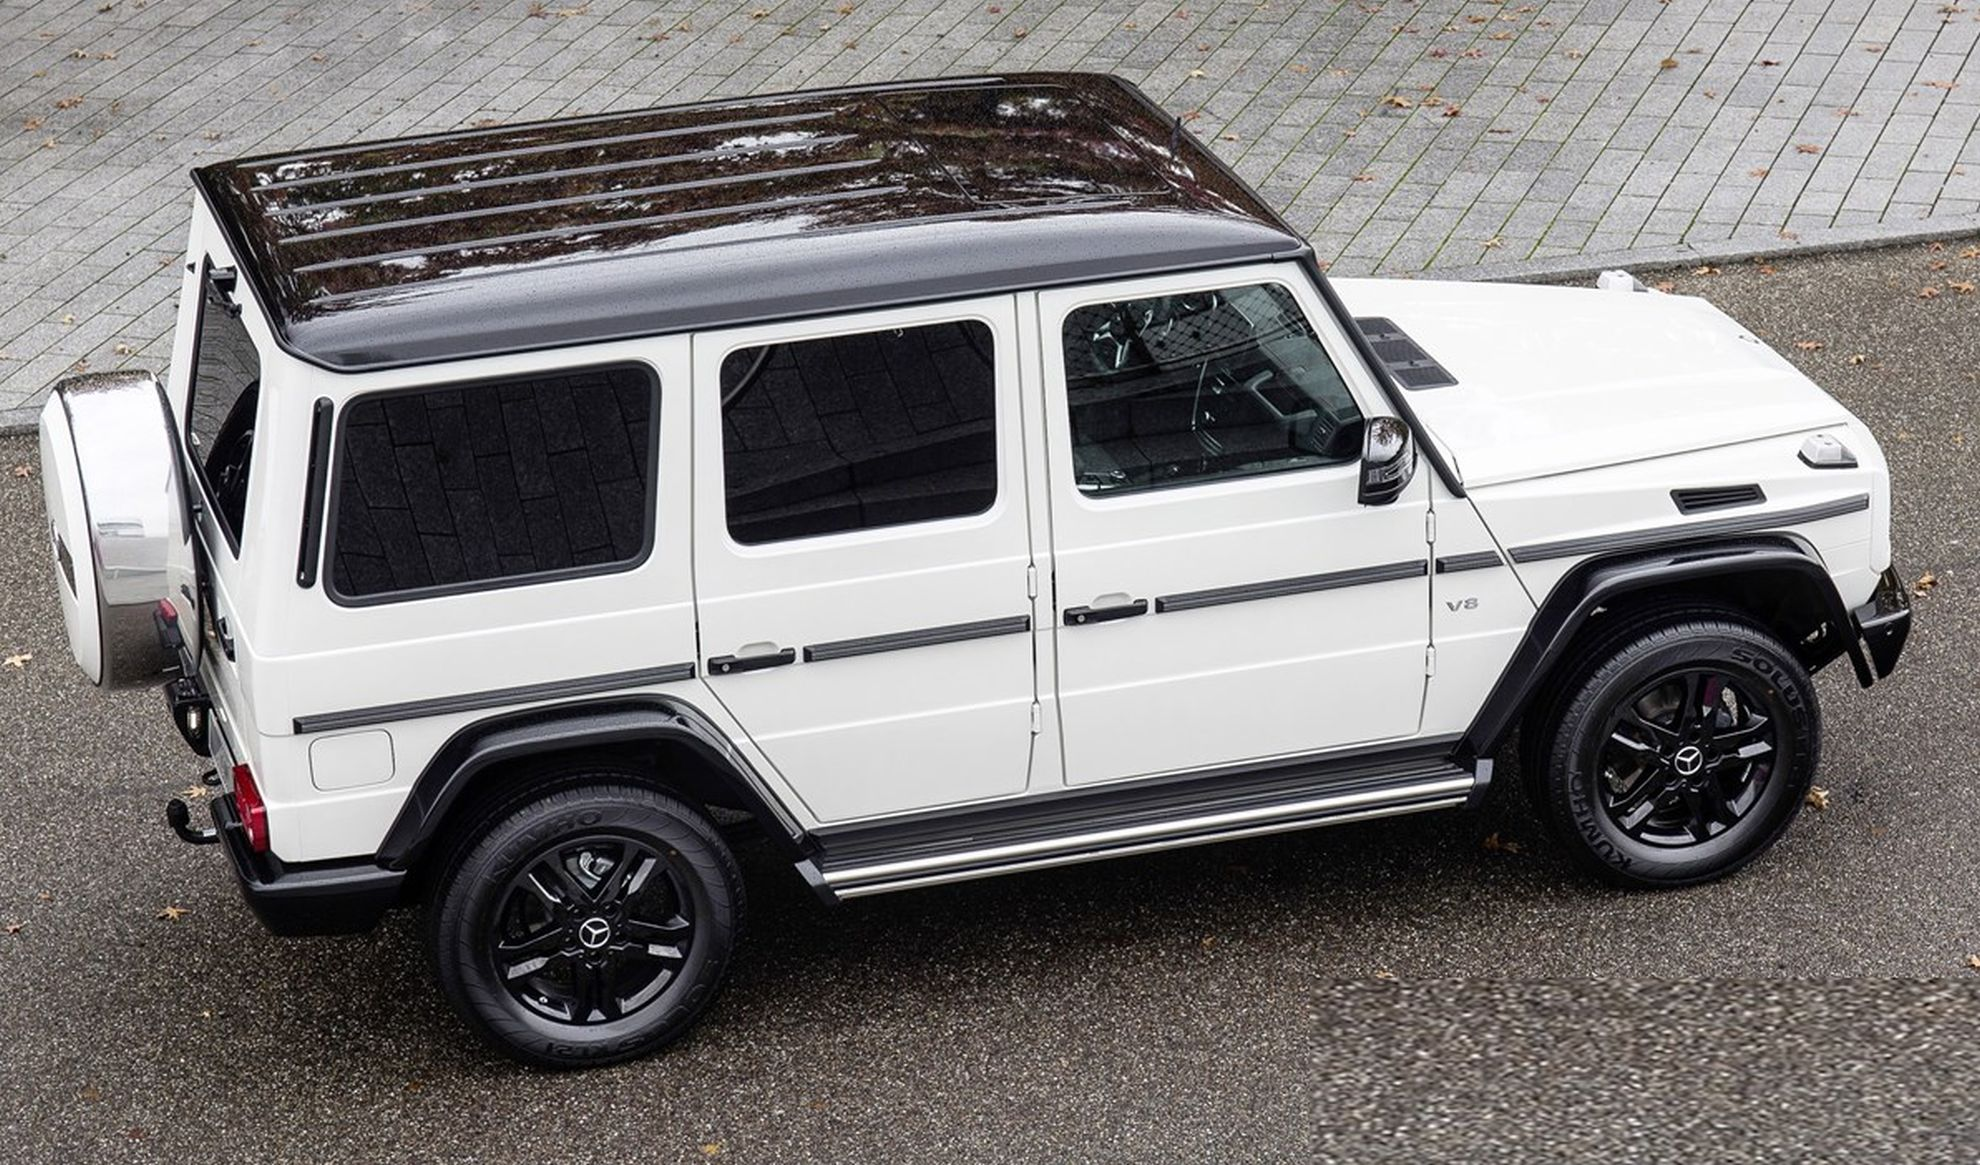 And-the-all-wheel-drive-car-award-goes-to-Mercedes-Benz-g-class